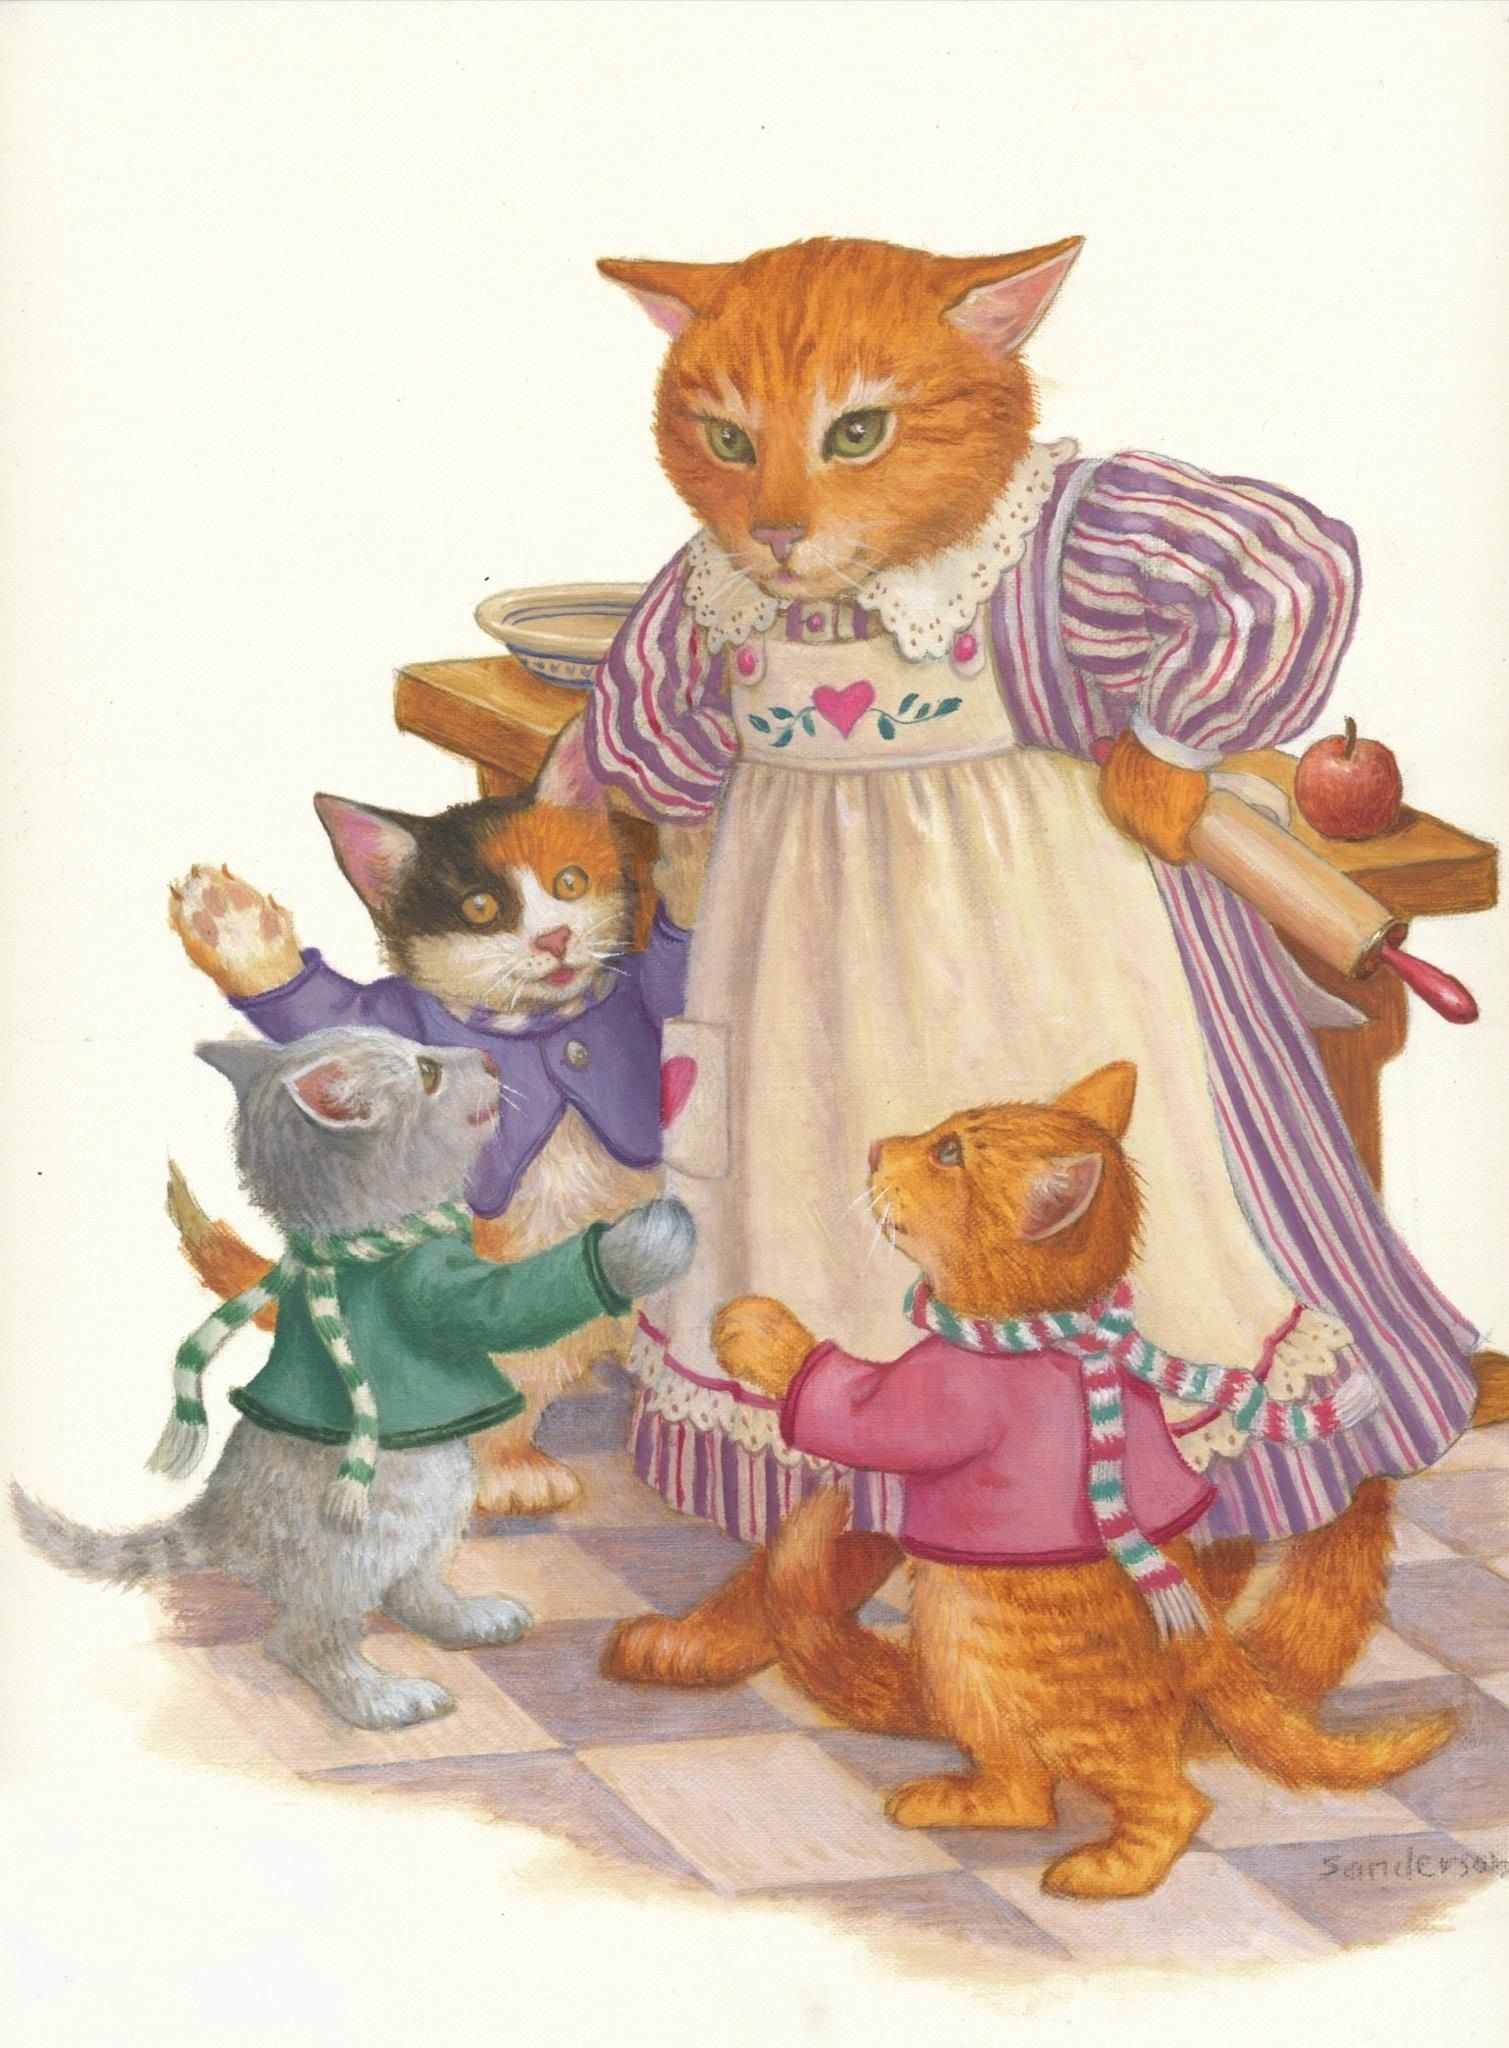 Ruth Sanderson Original Art From The Book Mother Goose From Our Collection Cats Illustration Cat Art Animal Art